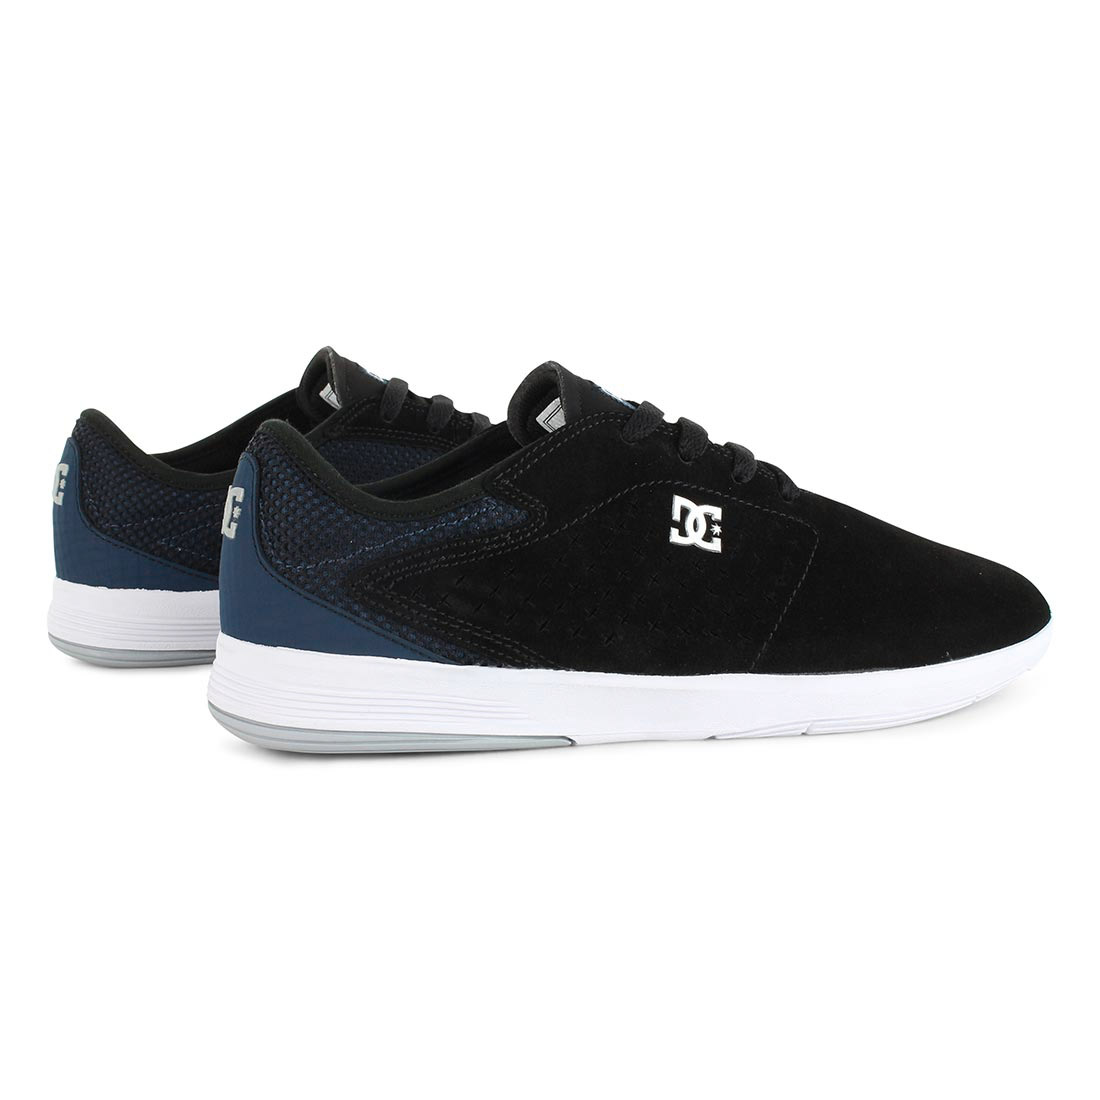 60% cheap amazing quality recognized brands DC Shoes New Jack S - Dew Deep Water